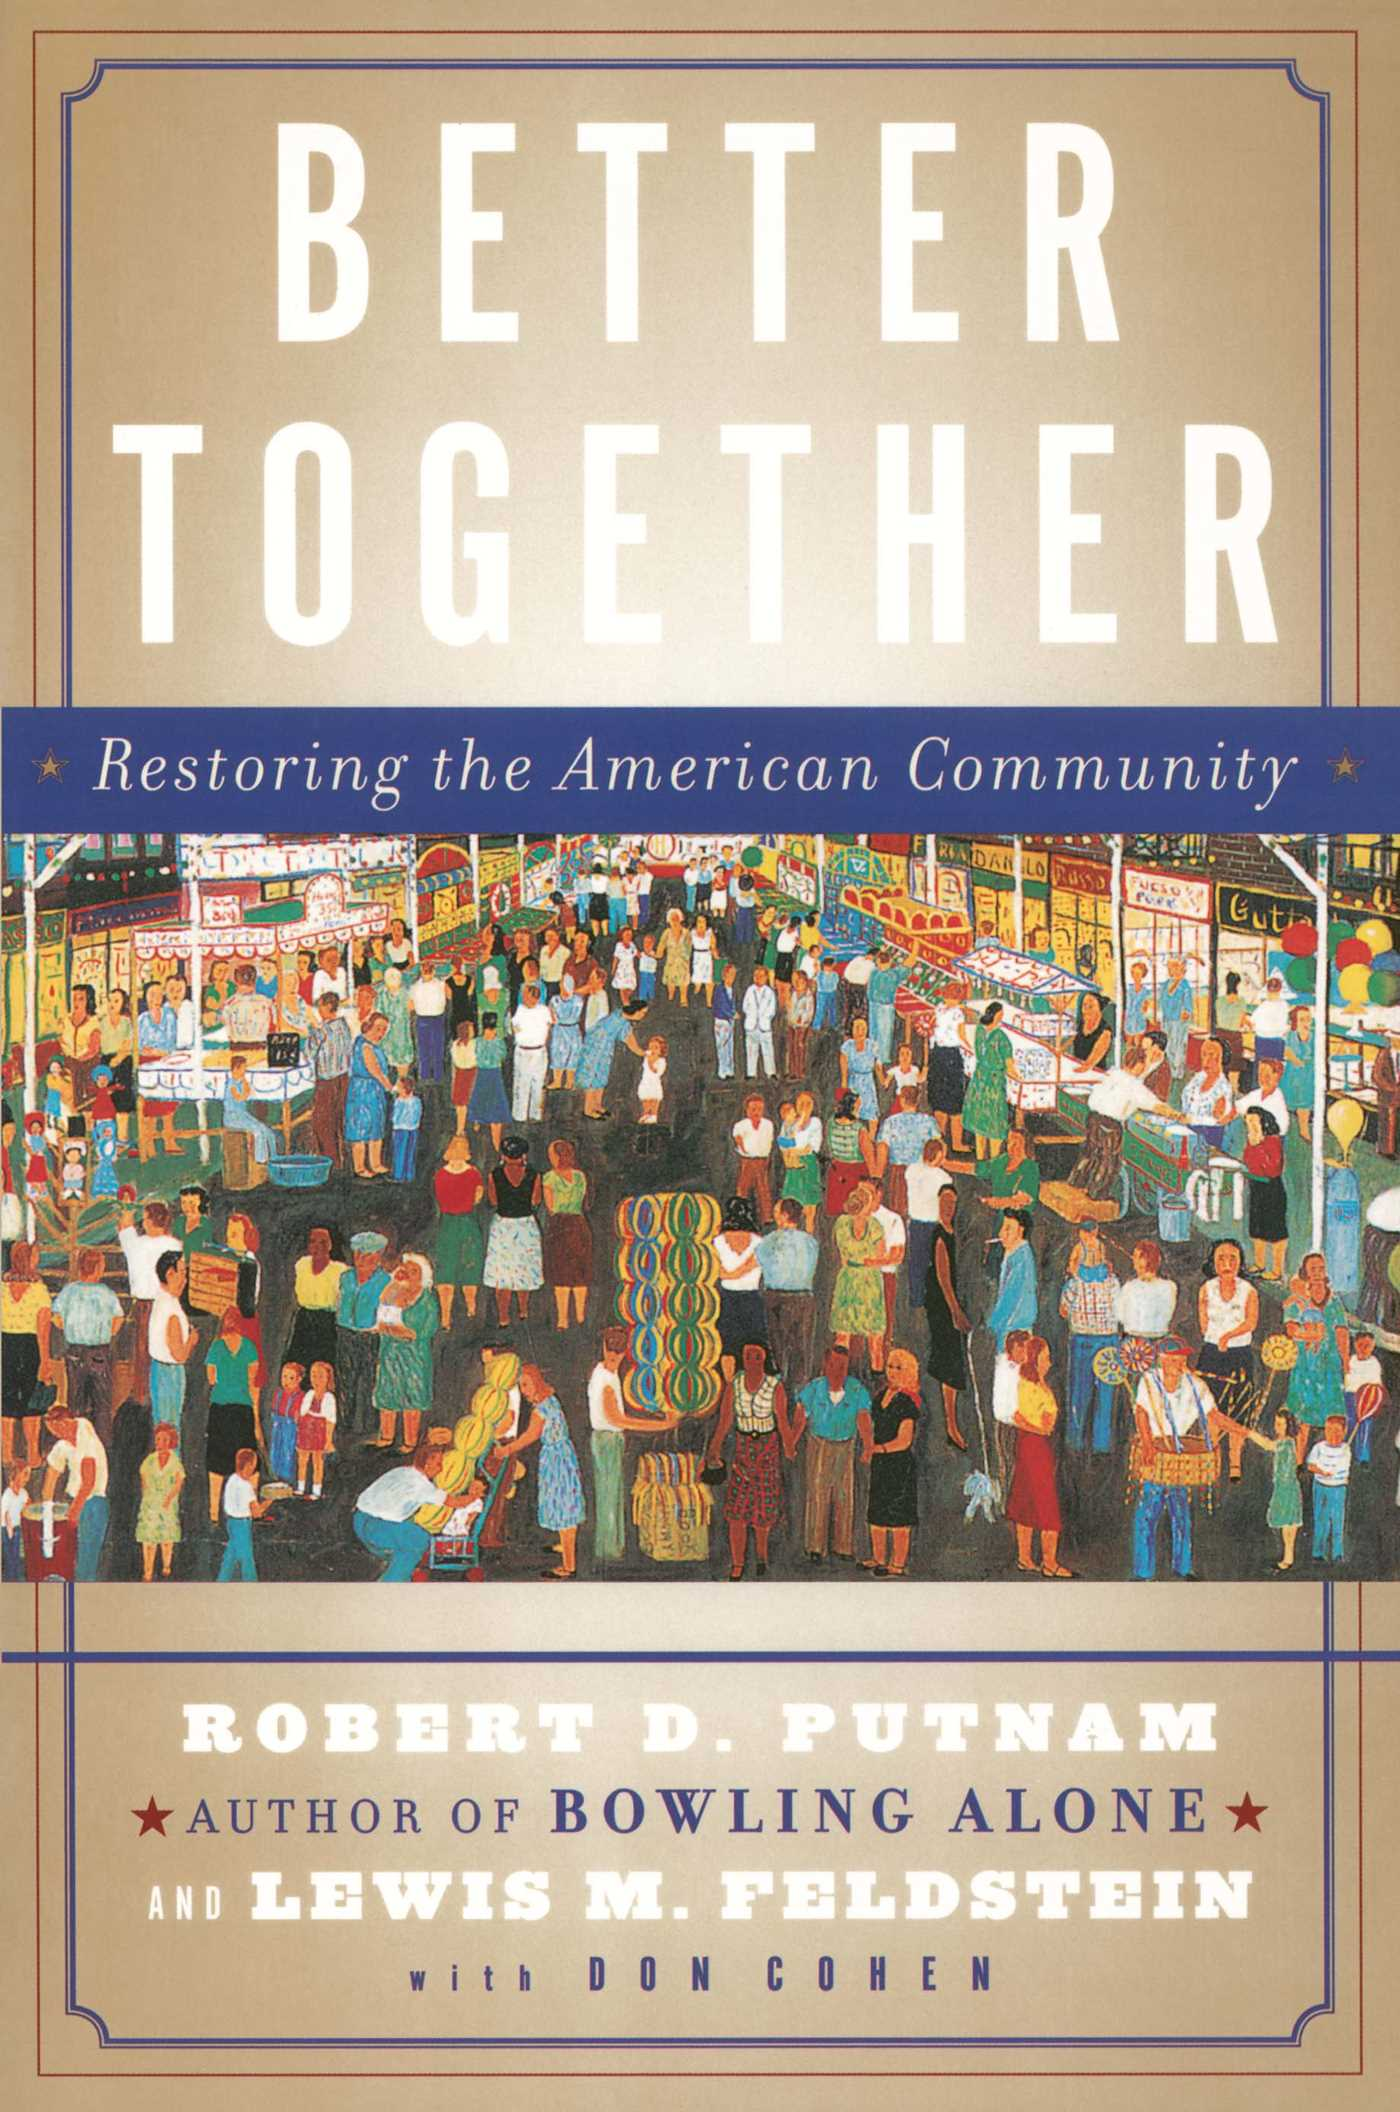 Better together ebook by robert d putnam lewis feldstein donald j better together ebook by robert d putnam lewis feldstein donald j cohen official publisher page simon schuster fandeluxe Images